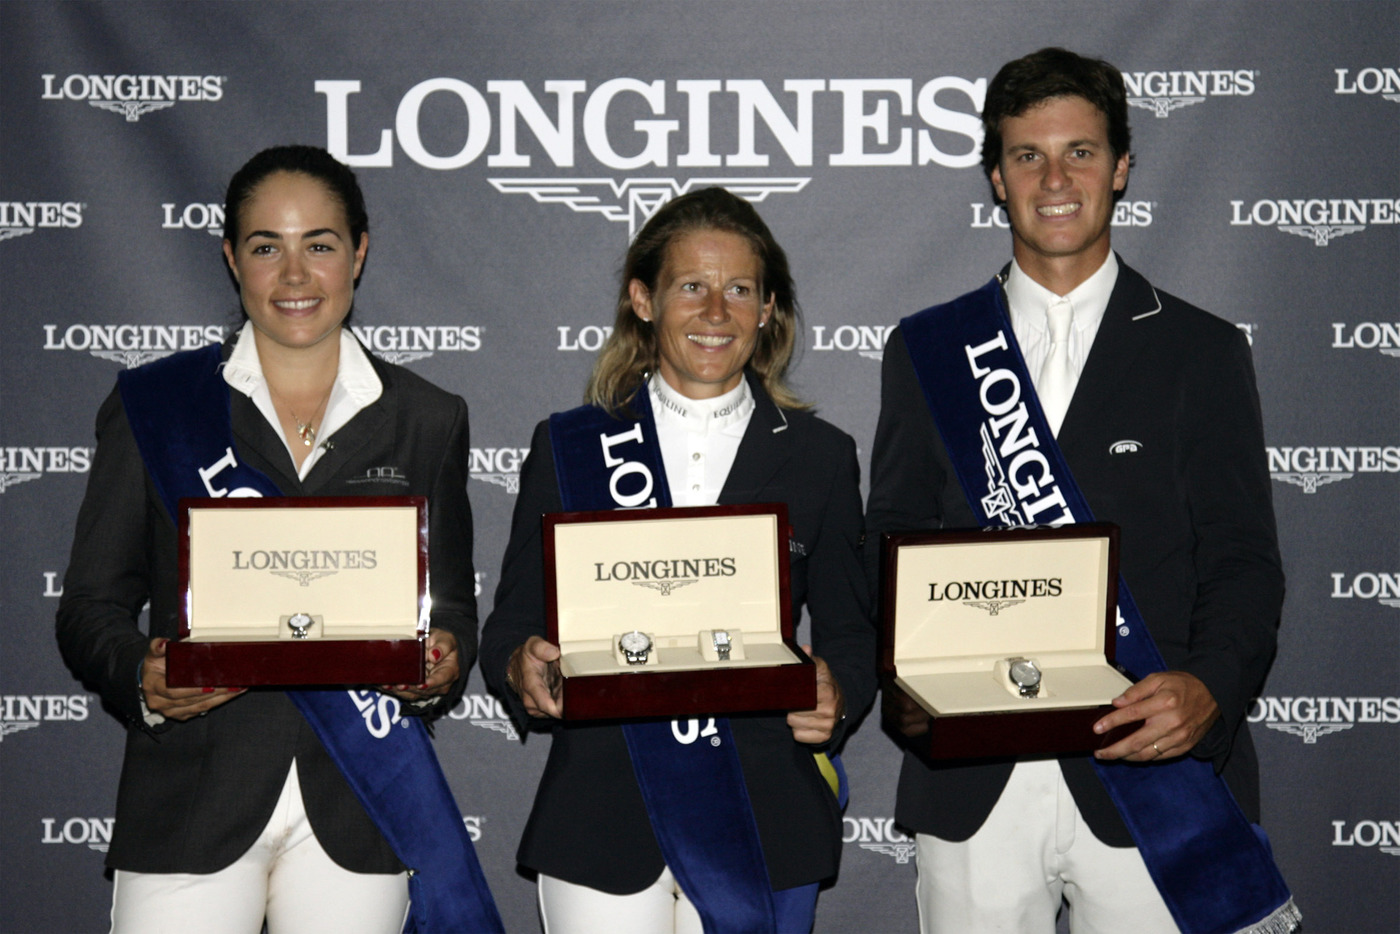 Longines Show Jumping Event: Eugenie Angot wins the Longines Queen's Cup of the CSIO Barcelona 2012 3